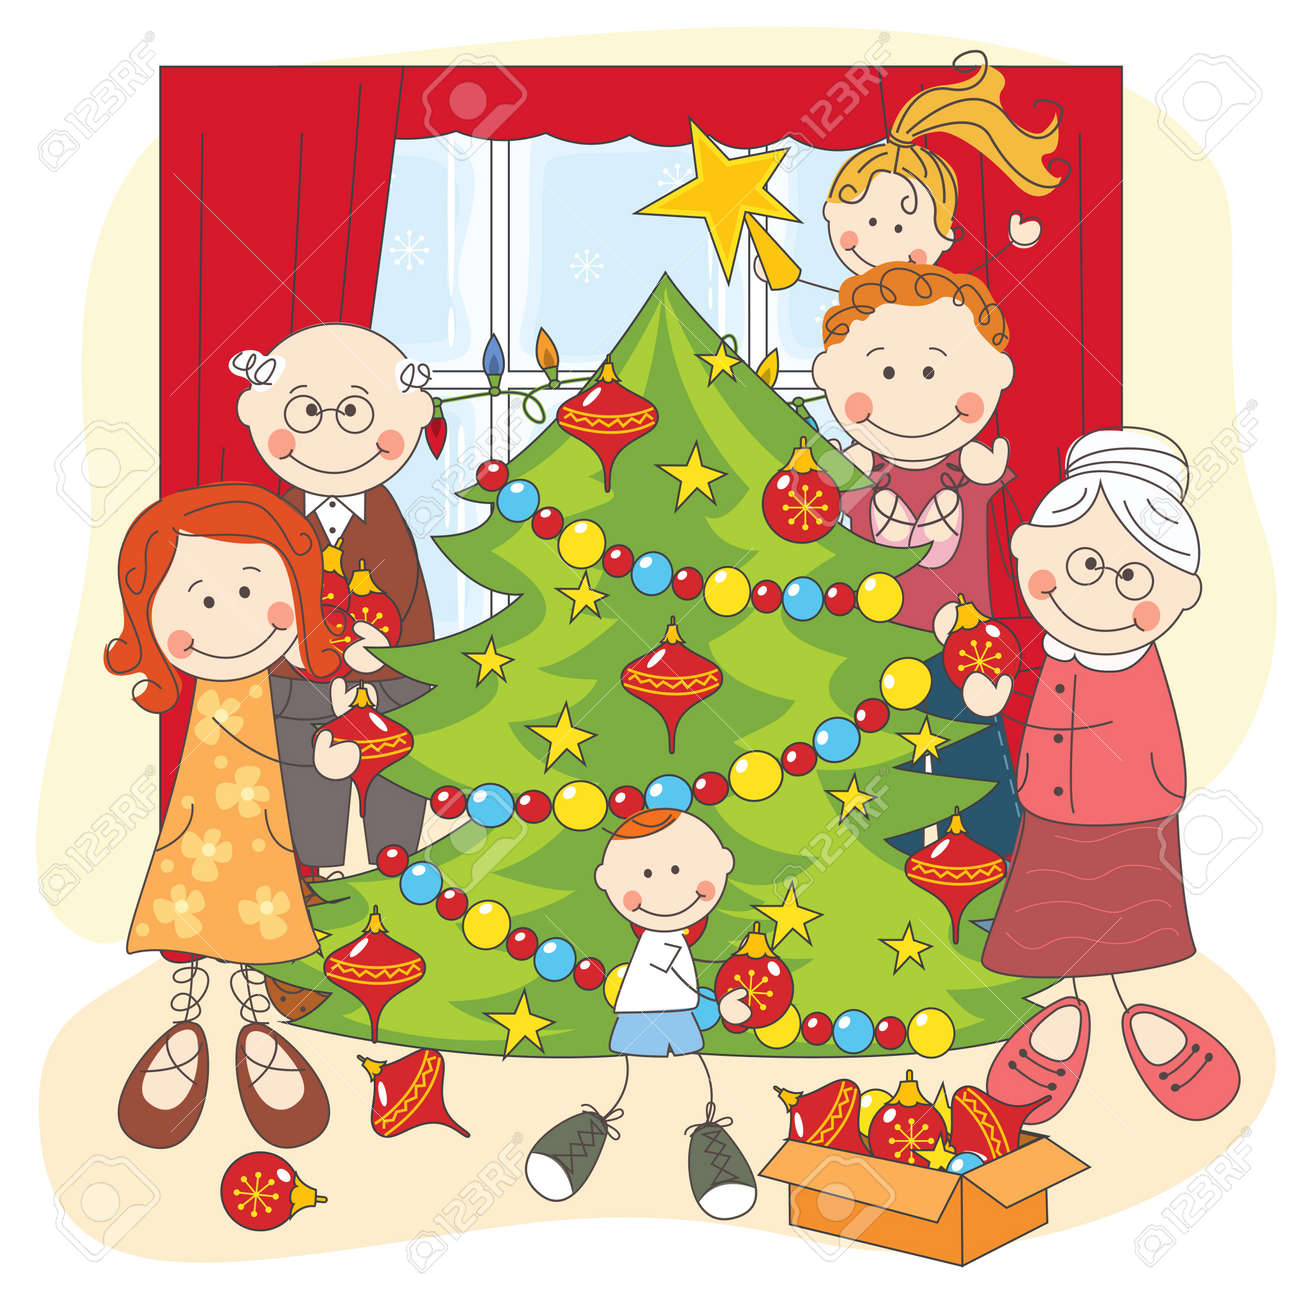 Christmas tree dress up images - The Big Happy Family Dress Up A Christmas Tree Hand Drawing Illustration Stock Vector